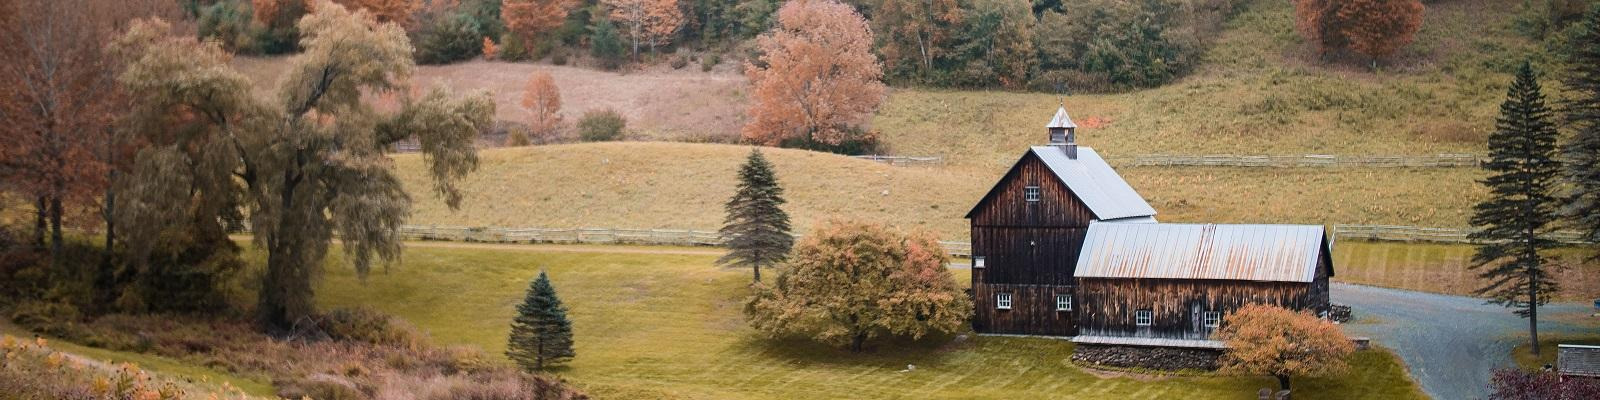 Farmhouse amid rolling hills in Vermont, US